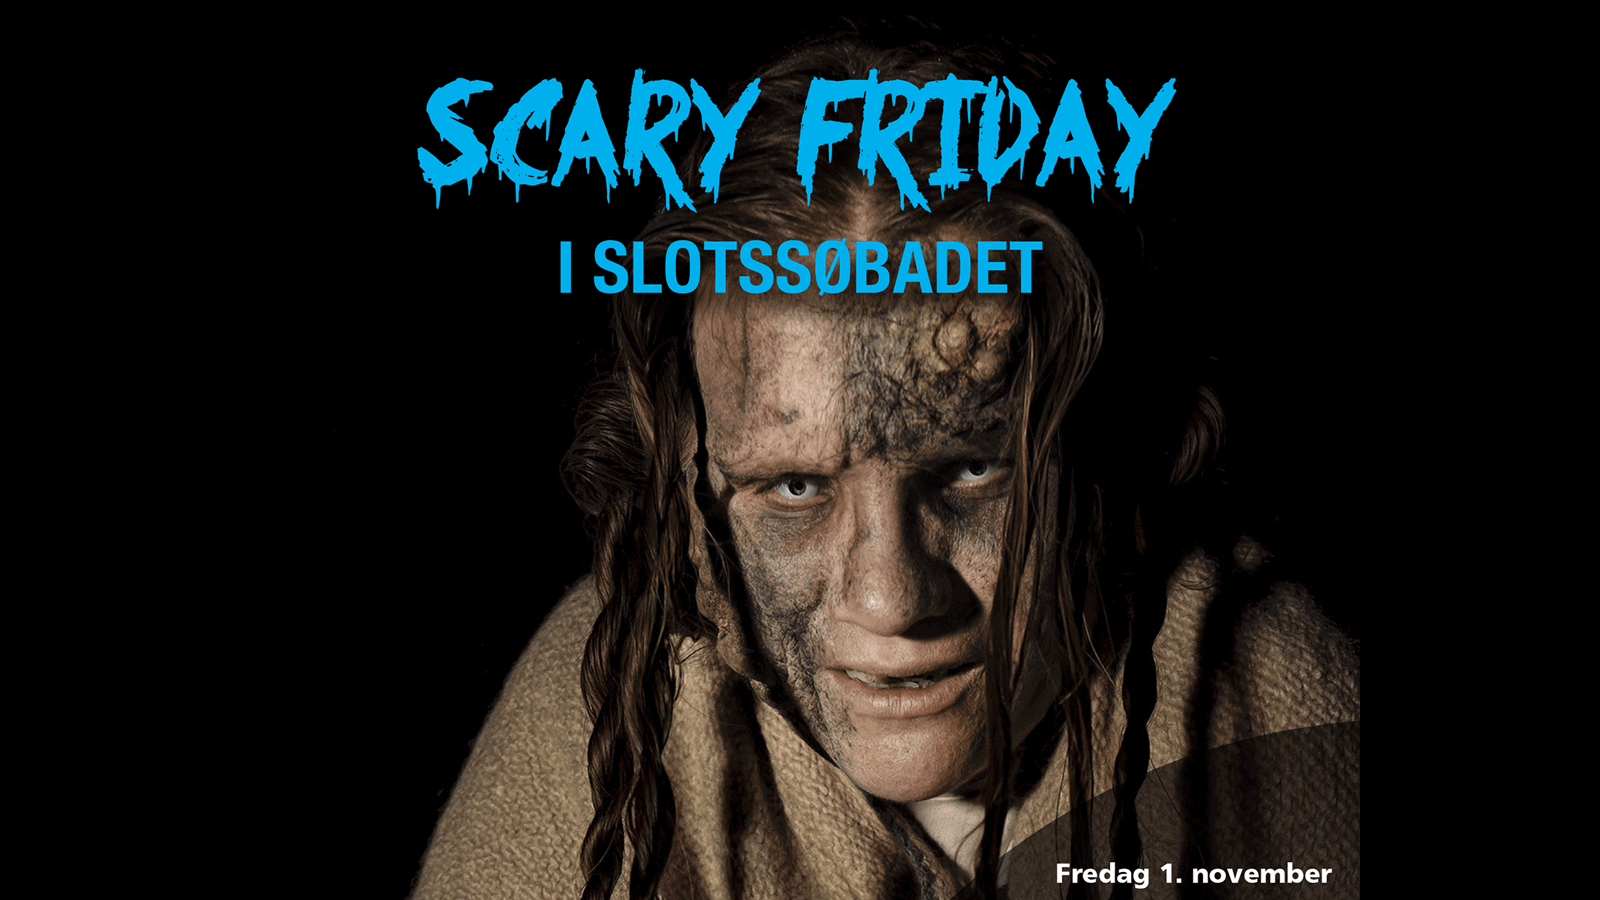 Scary Friday i SlotssøBadet